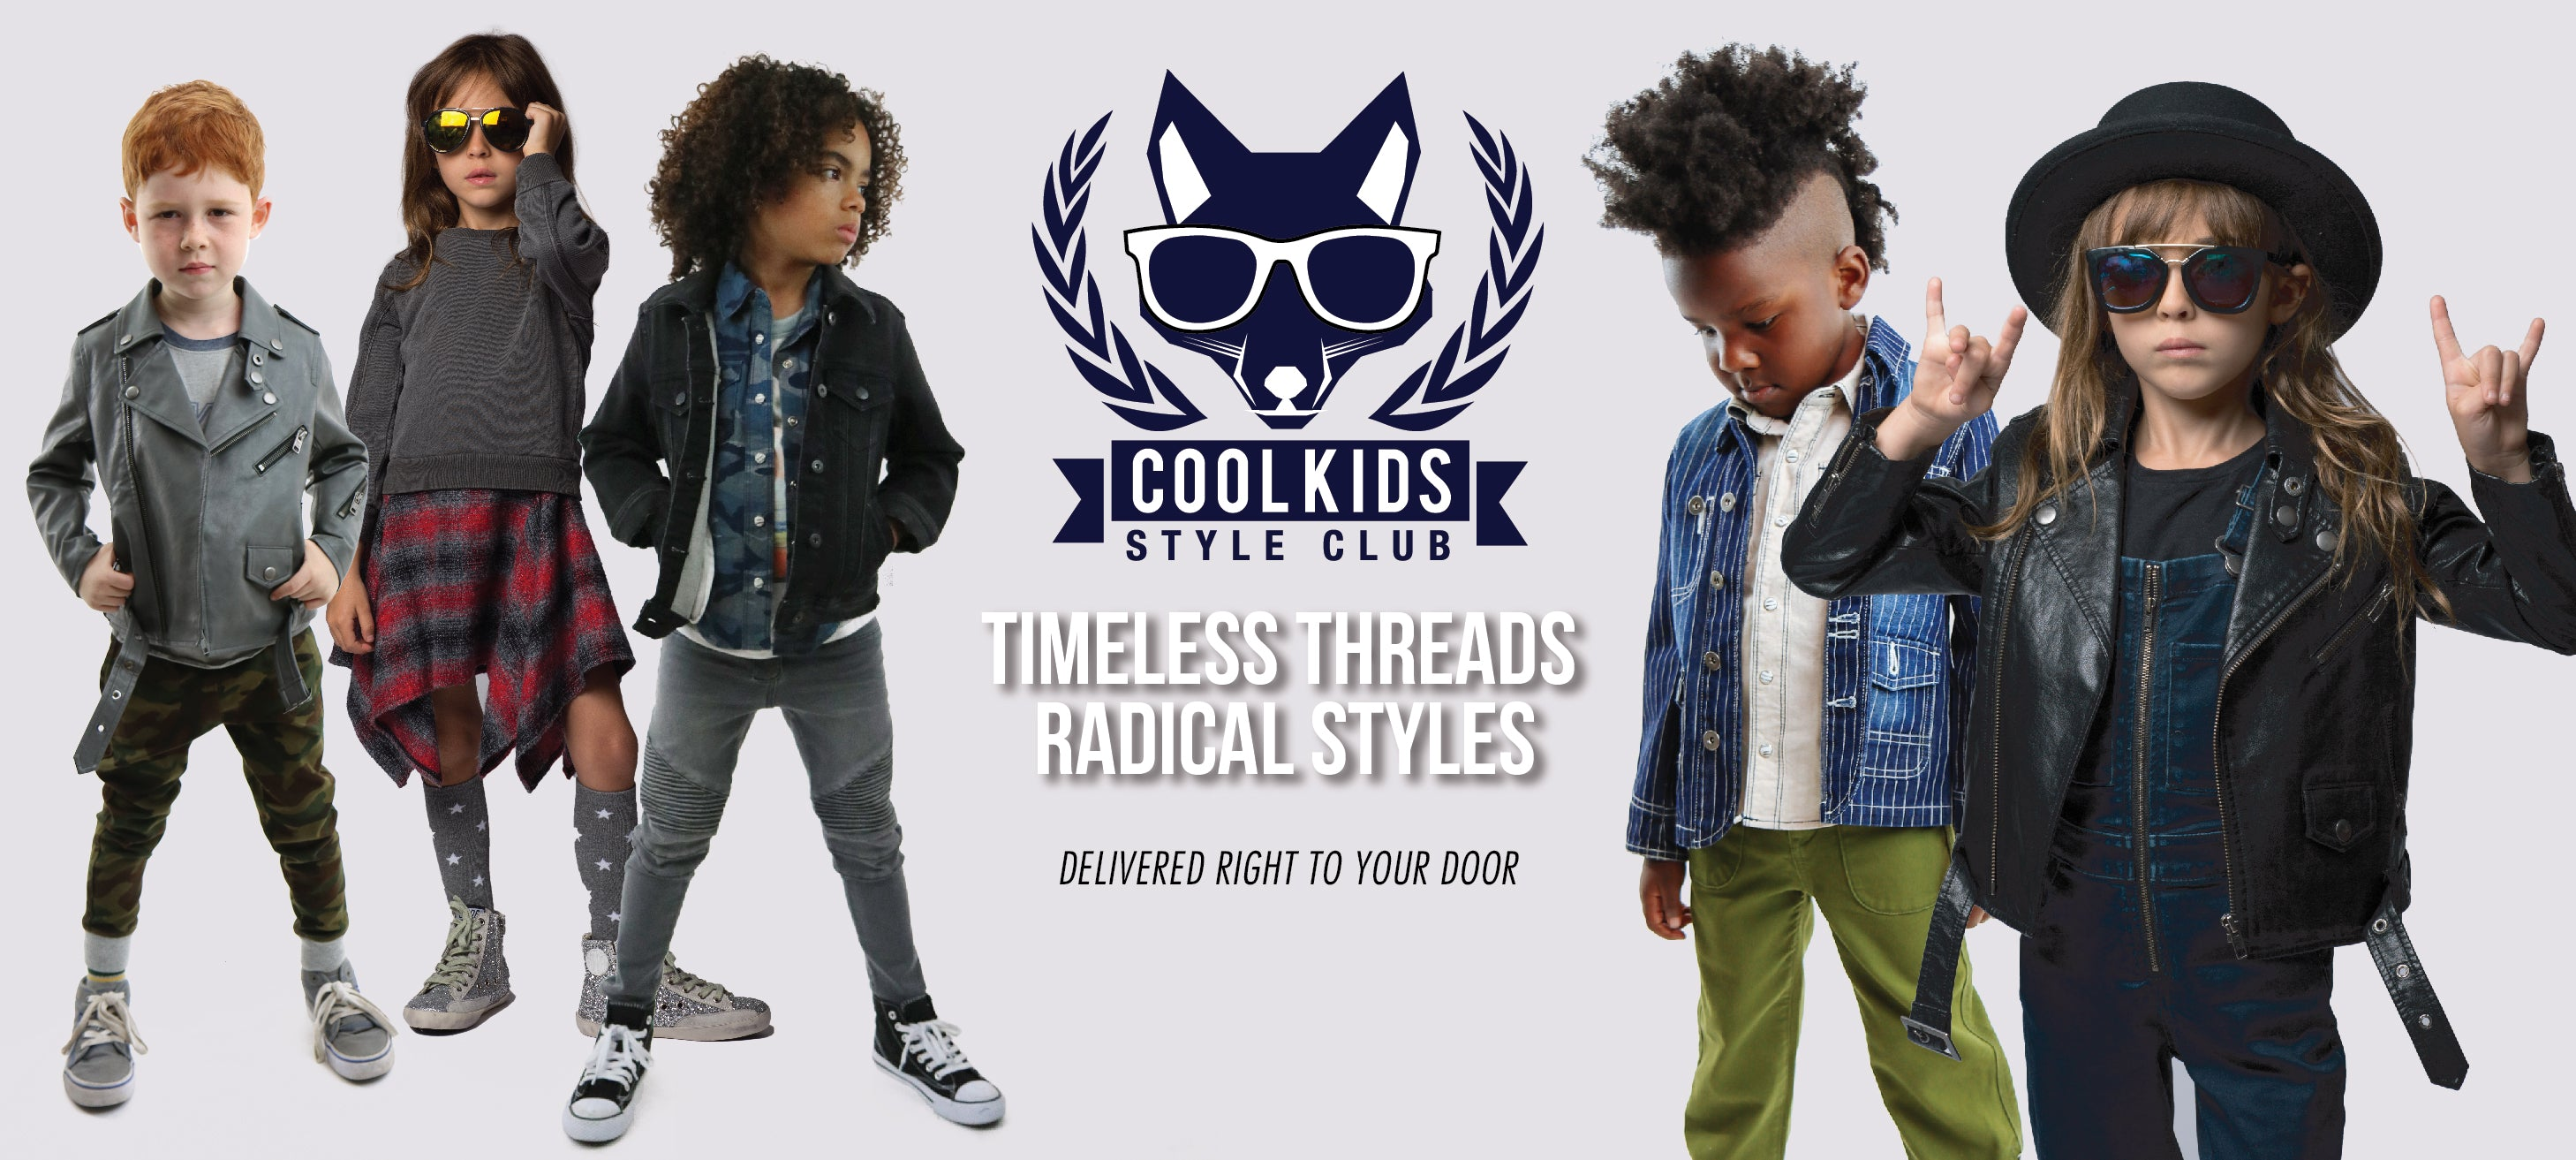 cool kids style club - Cool Pictures For Kids